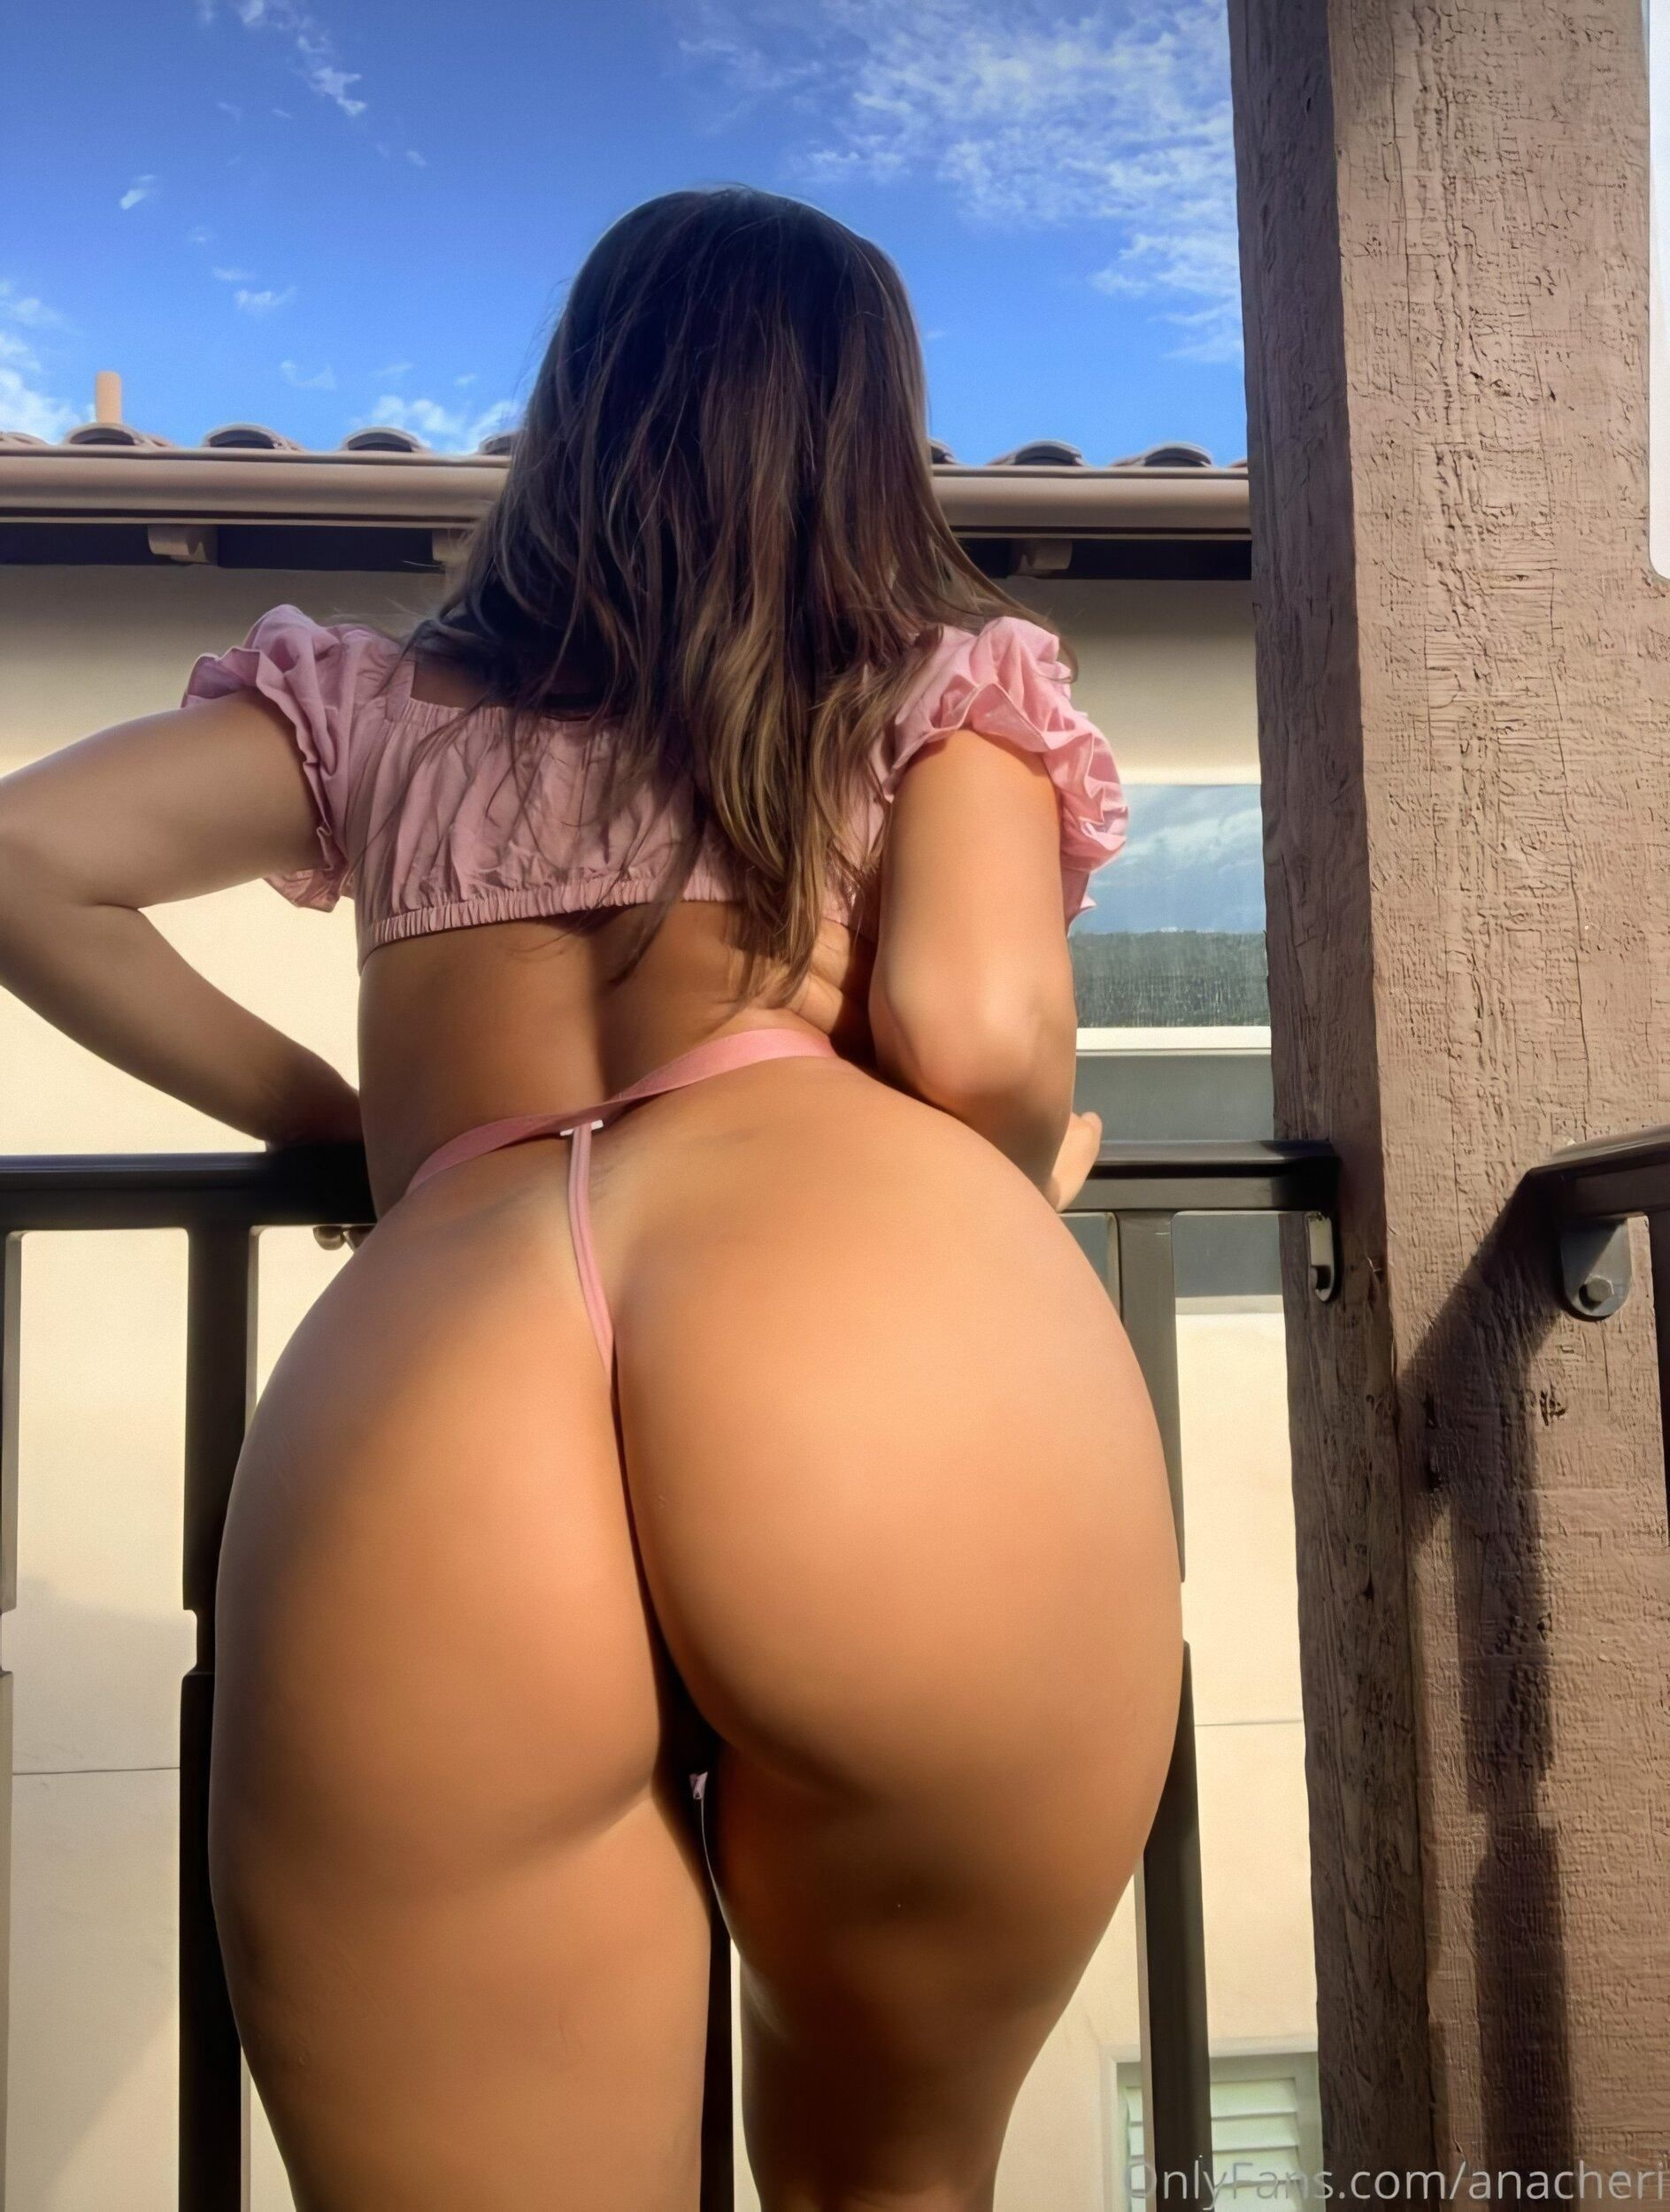 Ana Cheri big ass in thongs bent over - Ana Cheri Nude OnlyFans Leaks Big Tits Hot Ass